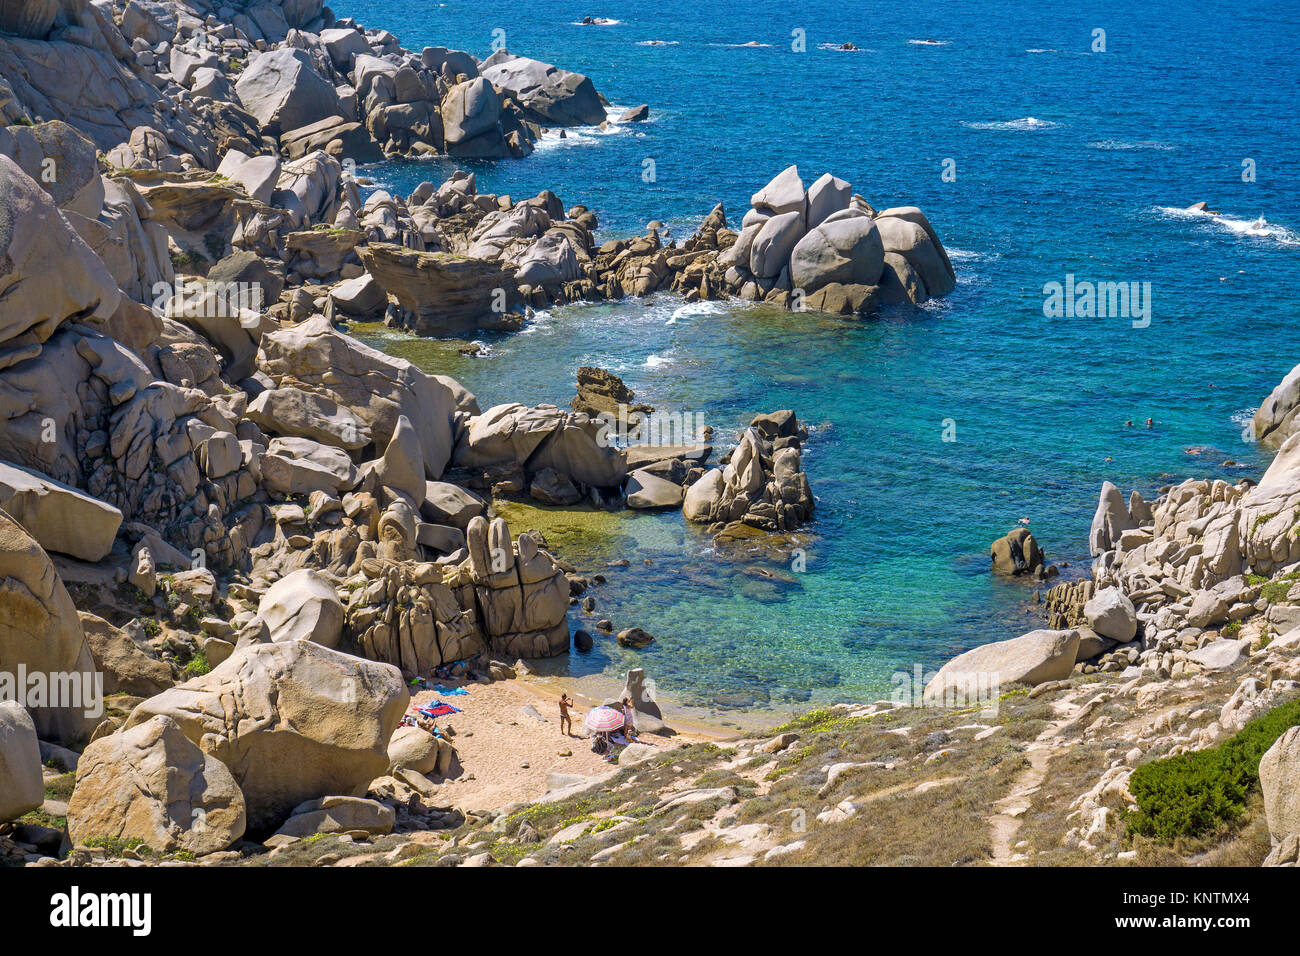 Tiny beach surrounded of granite boulders at Capo Testa, Santa Teresa di Gallura, Sardinia, Italy, Mediterranean - Stock Image